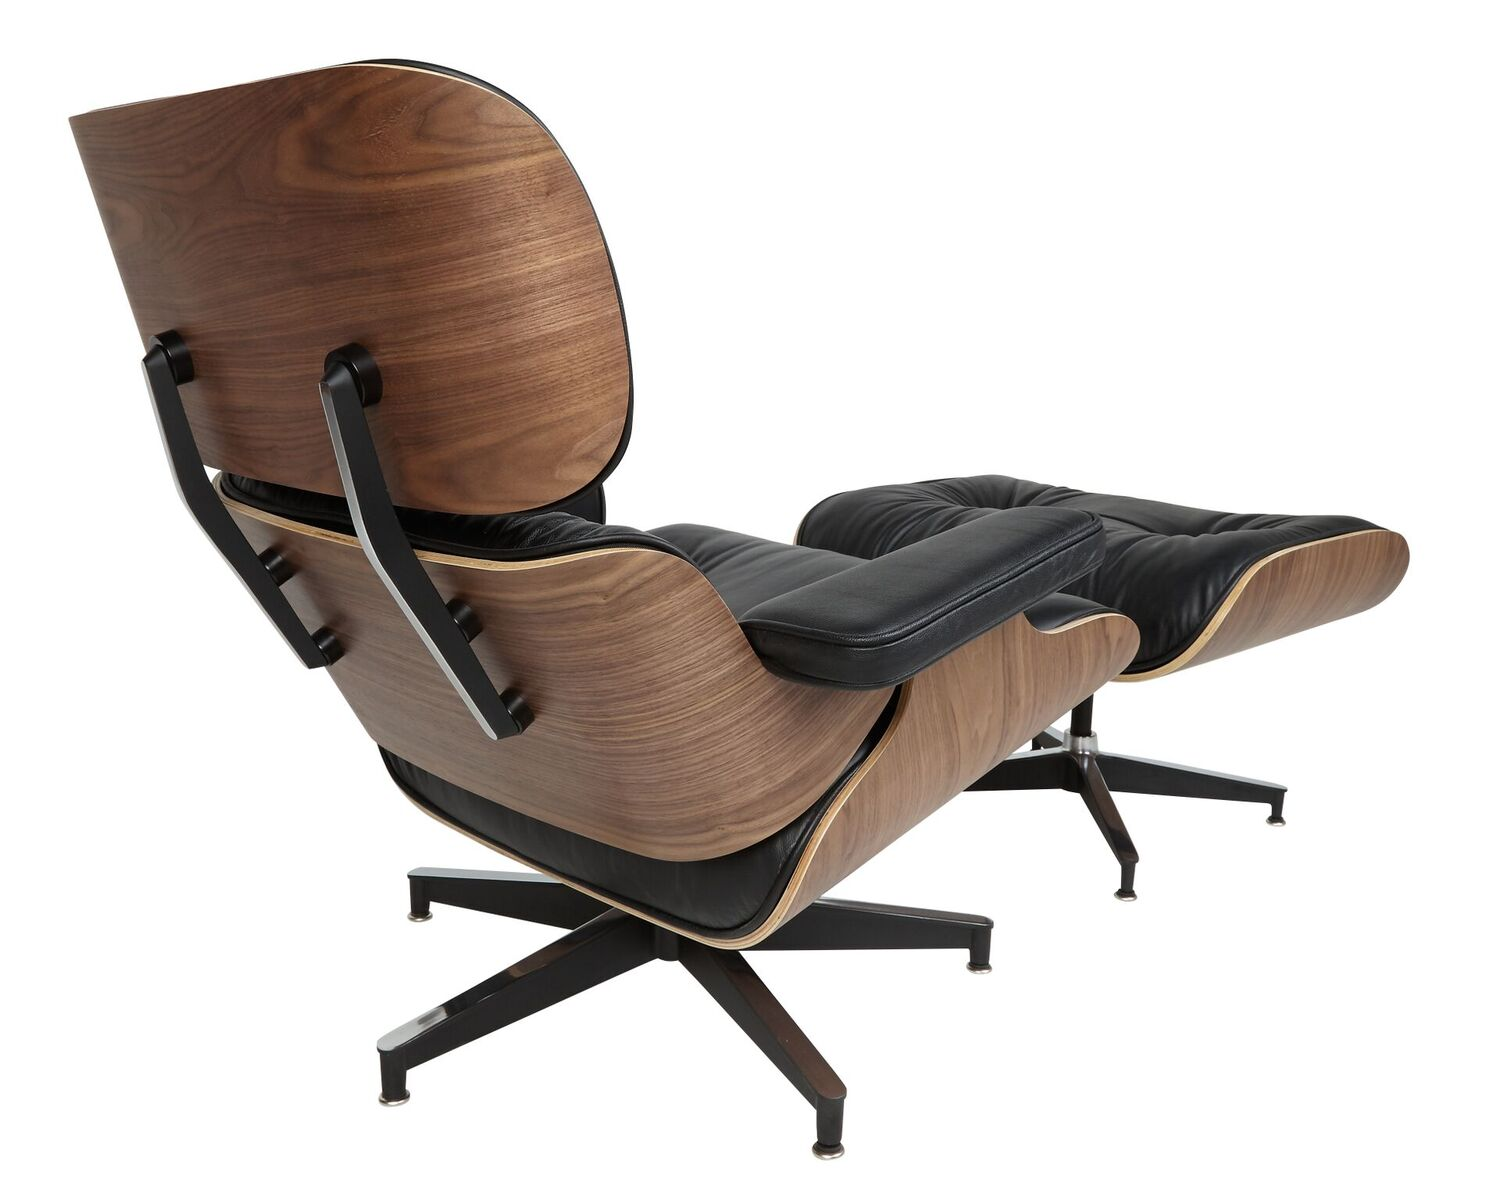 Tremendous Pash Classics Eames Lounge Chair Ottoman The Coolector Alphanode Cool Chair Designs And Ideas Alphanodeonline